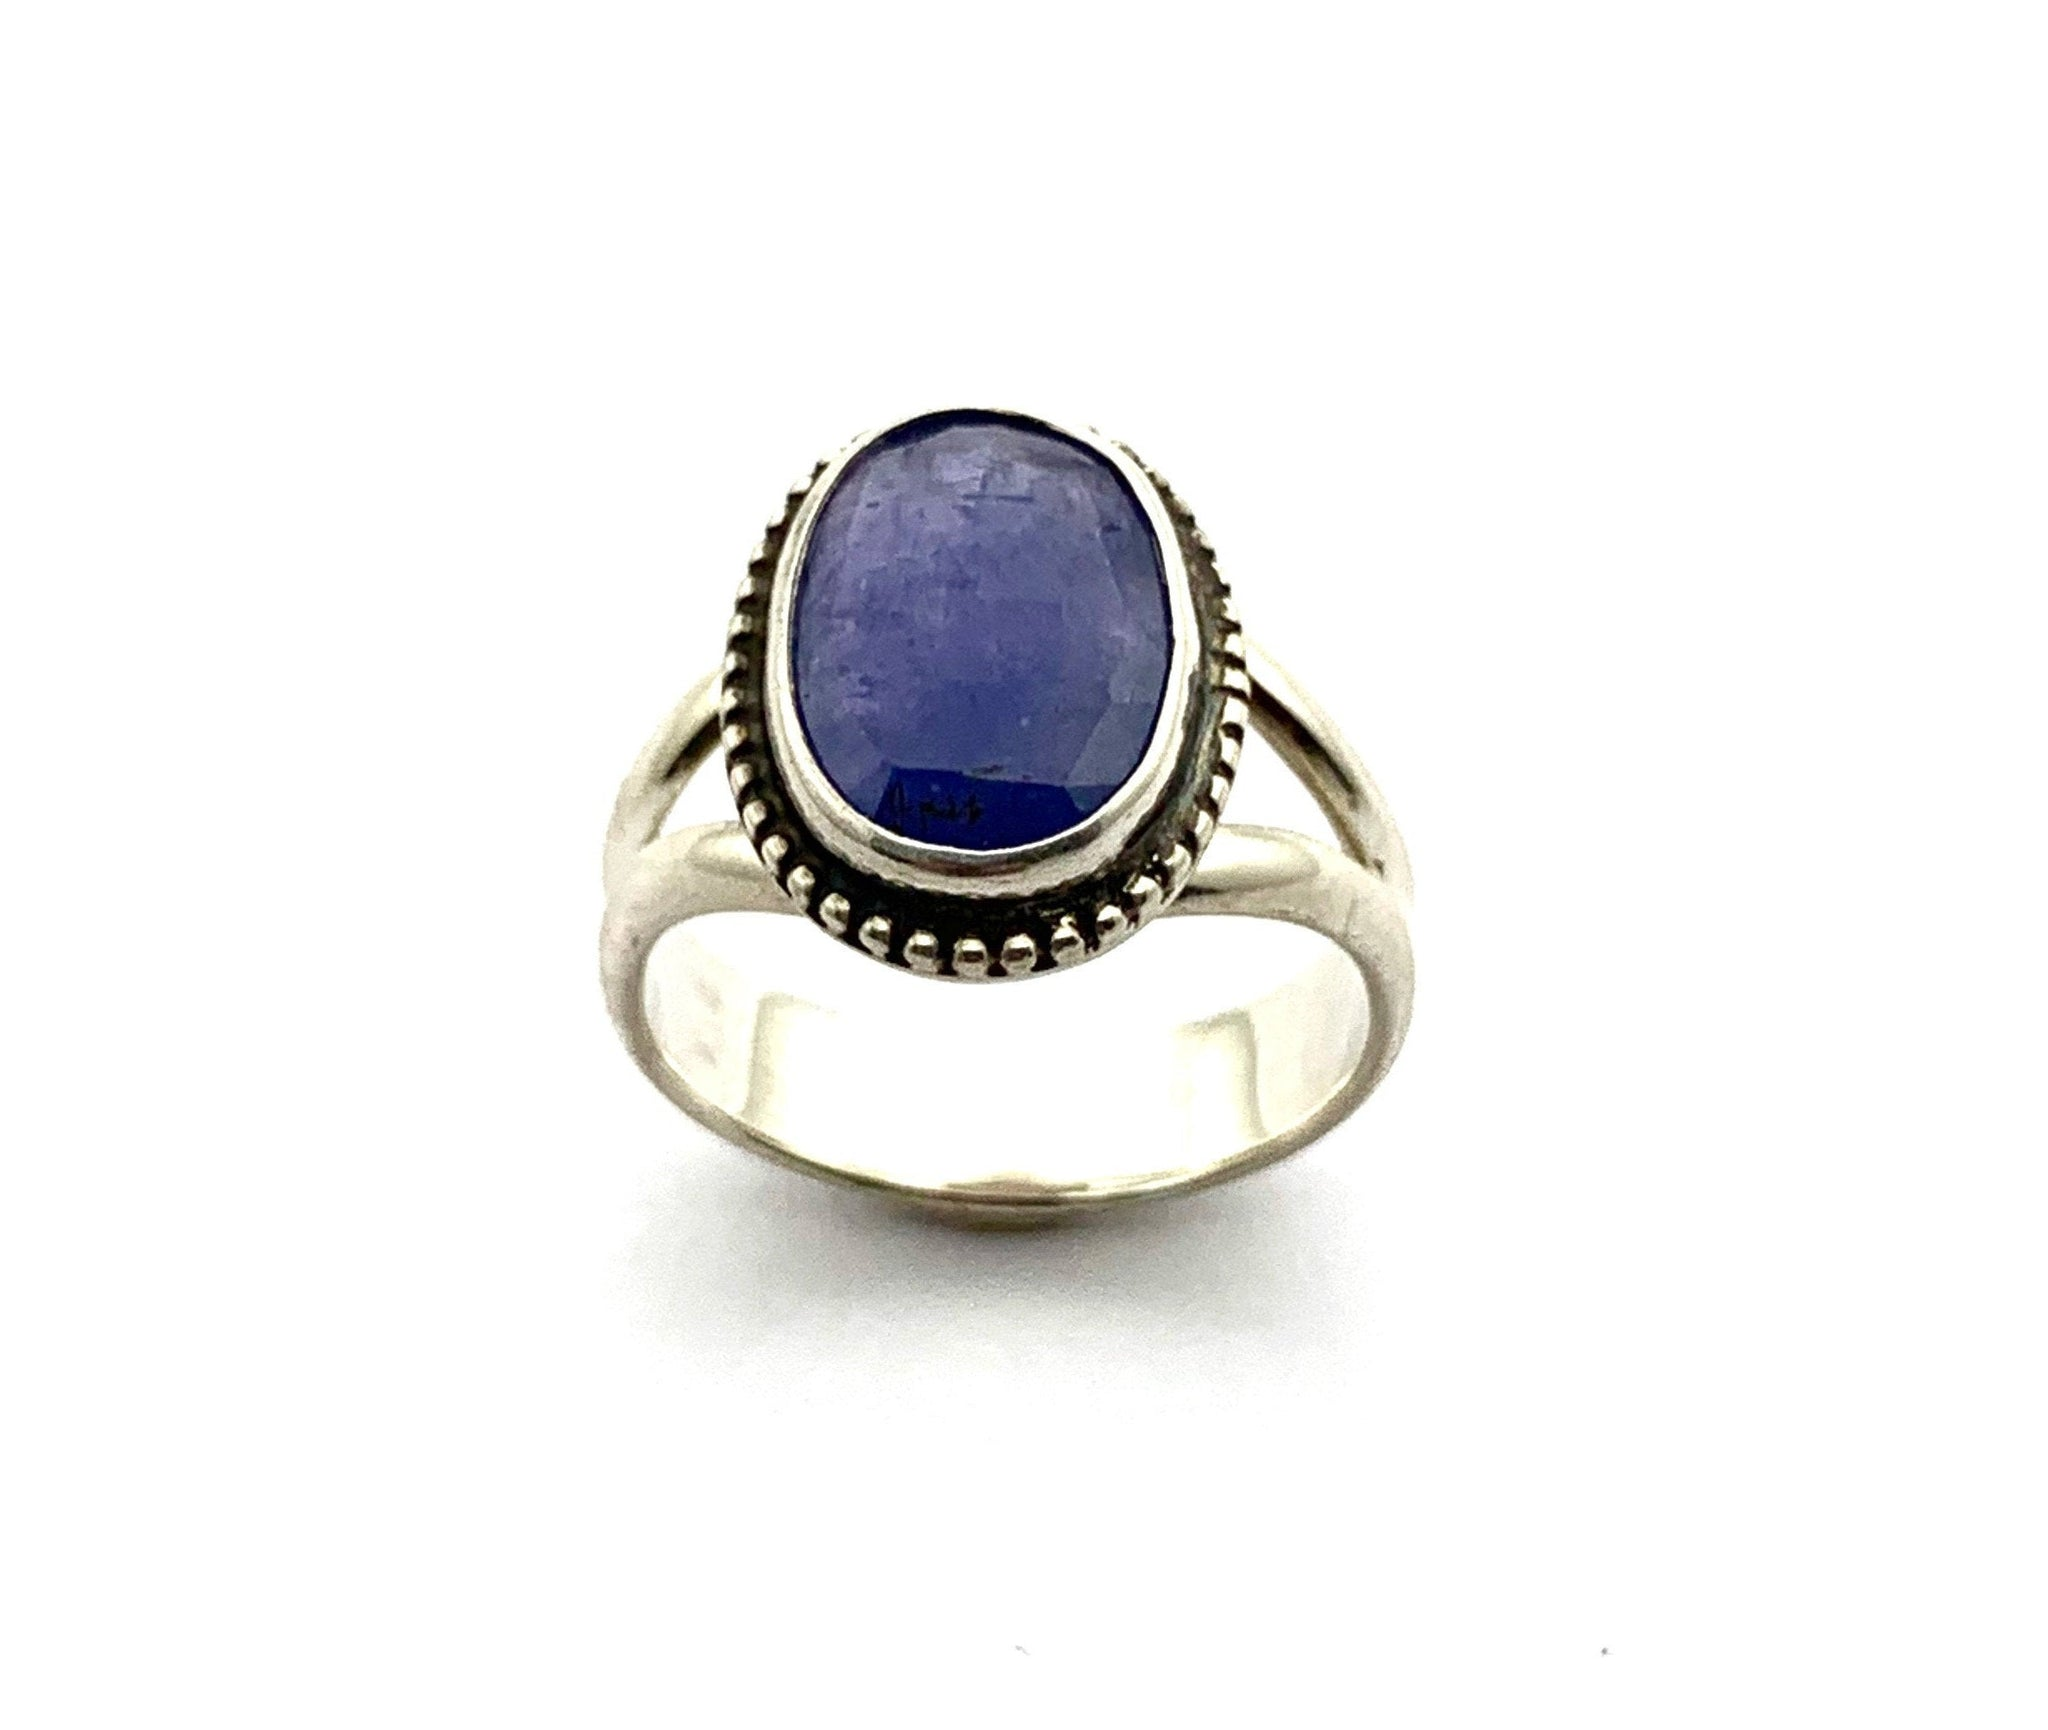 Tanzanite Ring in sterling silver, Rose Cut Tanzanite Jewelry, December birthstone